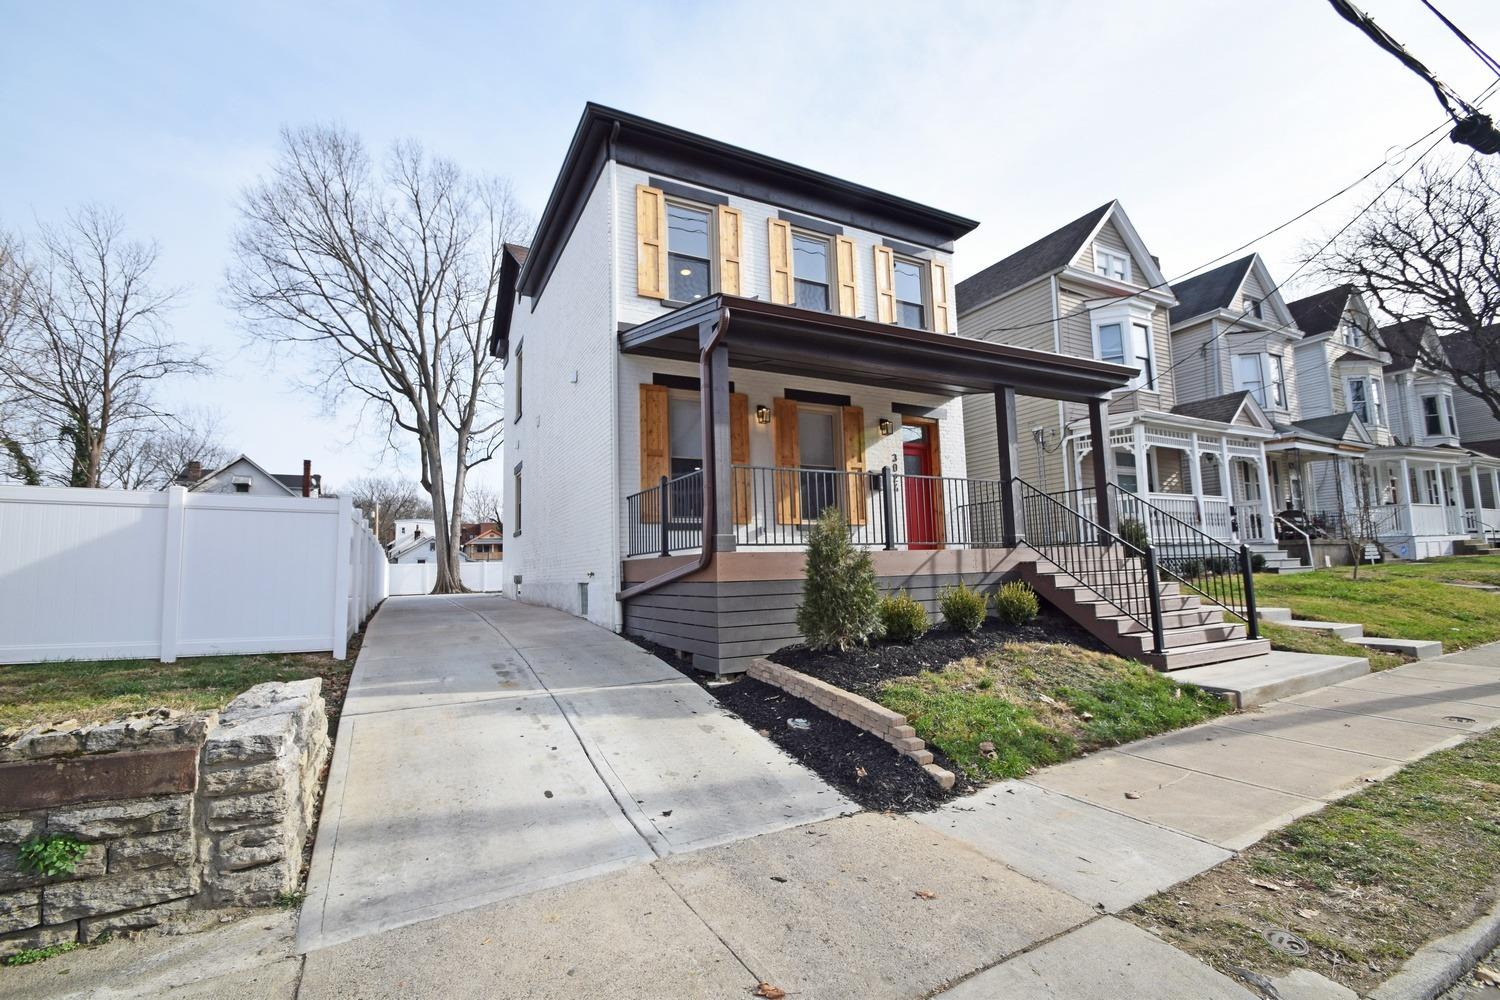 Photo 2 for 3024 Hackberry St Evanston, OH 45206